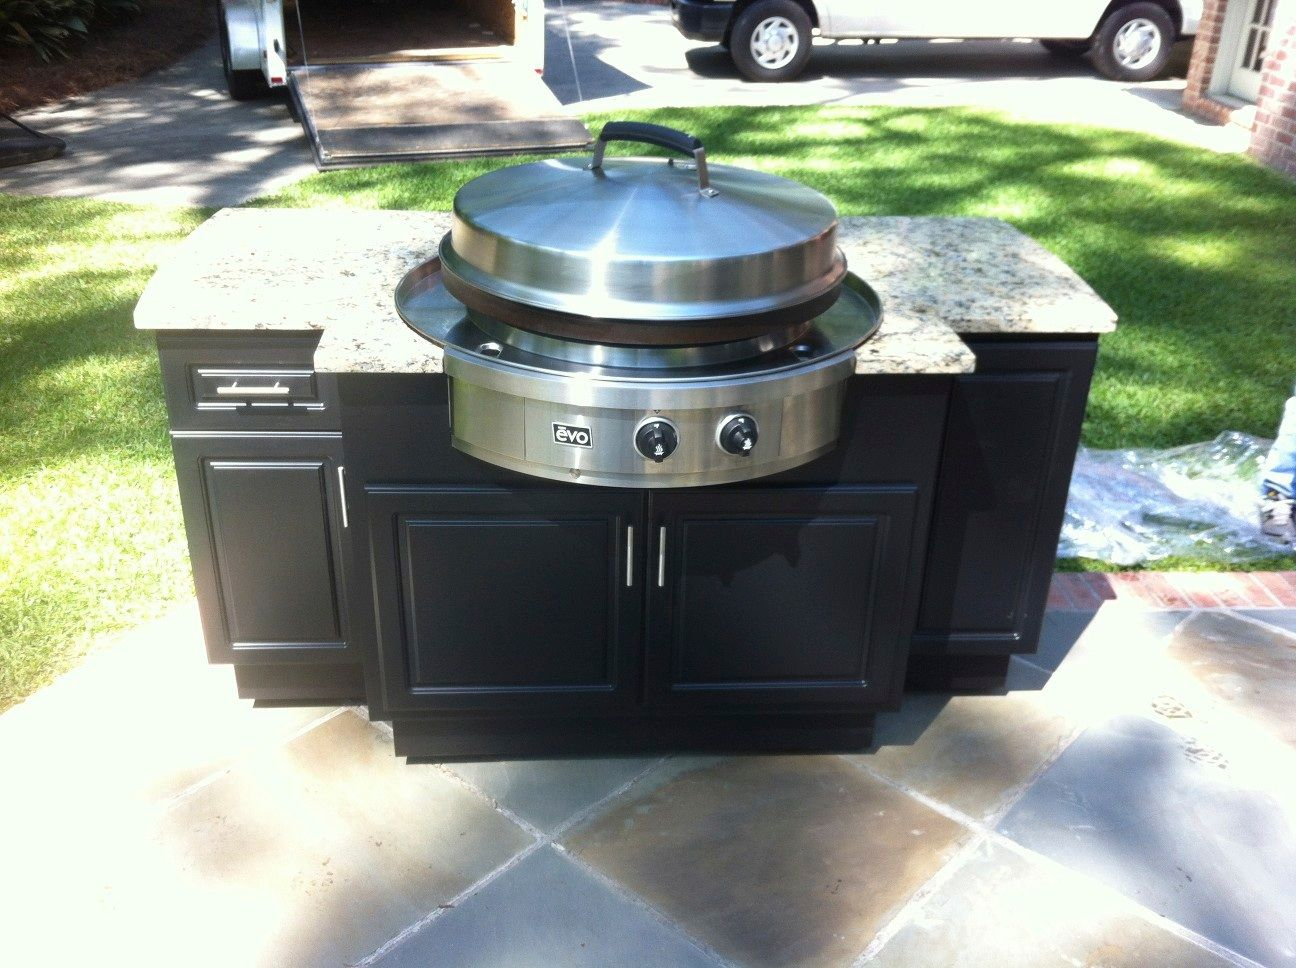 A Stand Alone Evo 30g Grill On A Beautiful Mgp Cabinet With Granite Counter Tops Outdoor Kitchen Countertops Bbq Island Outdoor Kitchen